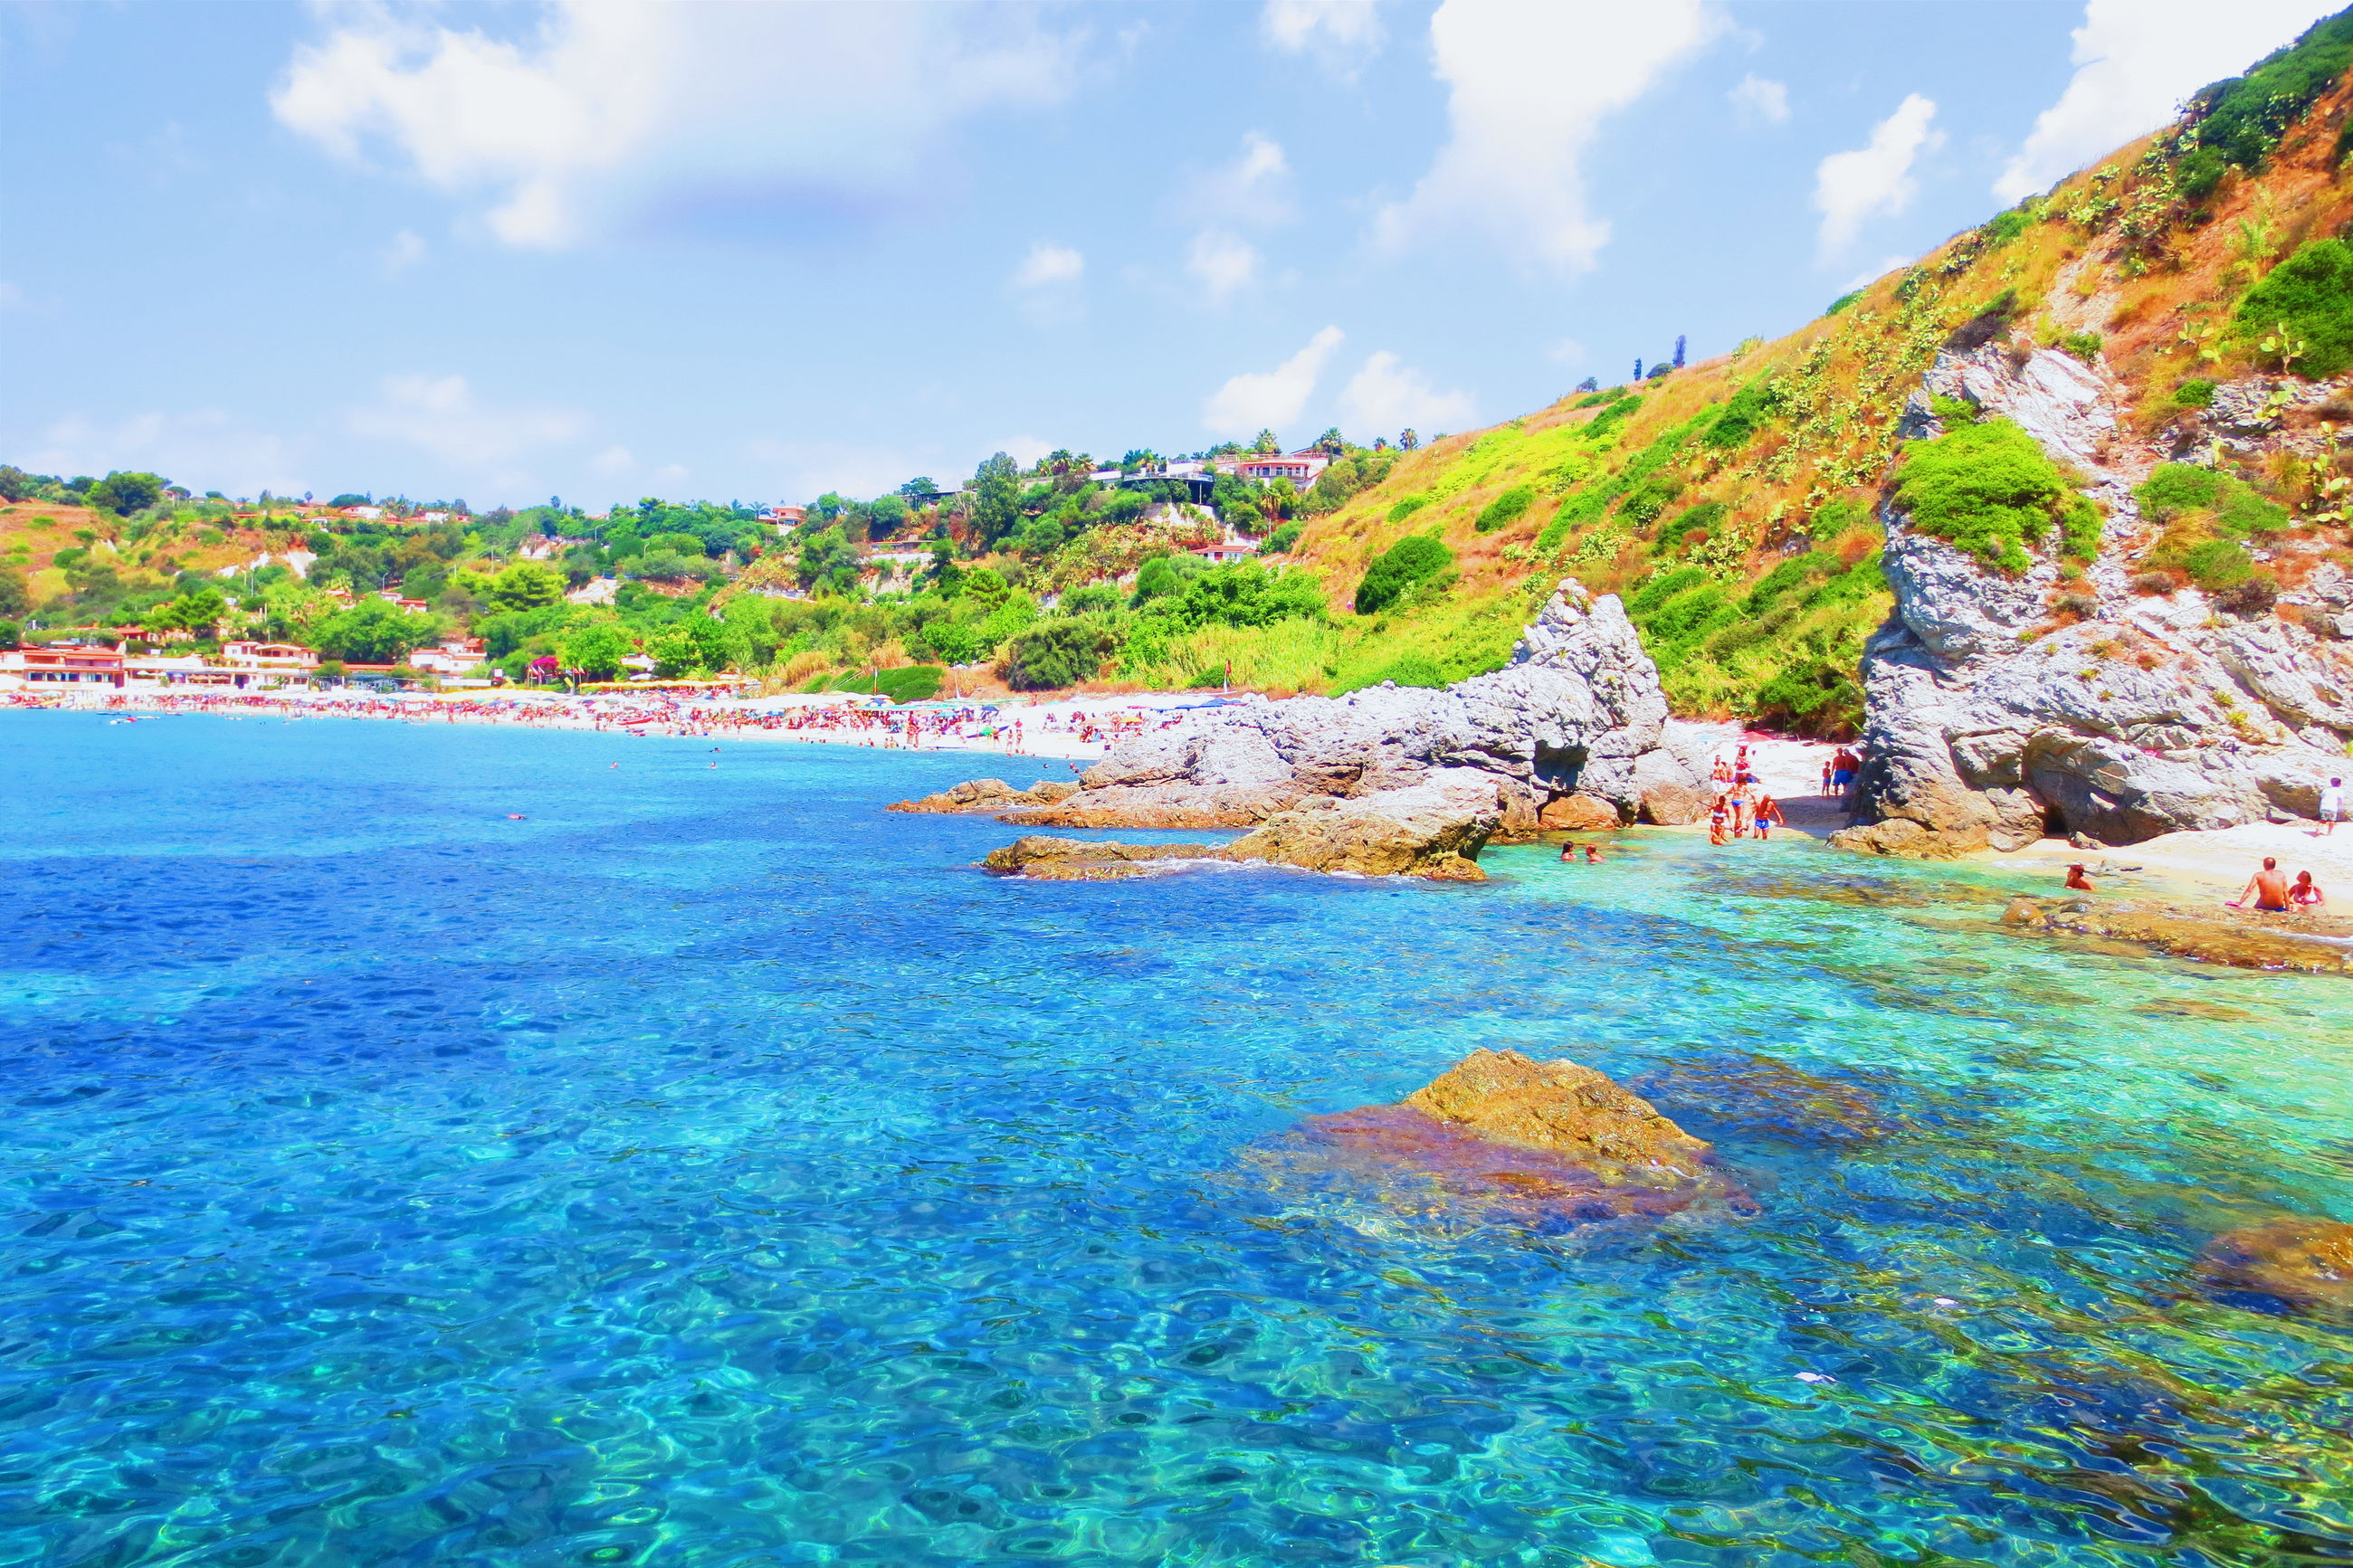 water, sky, tranquility, sea, tranquil scene, scenics, beauty in nature, nature, blue, tree, cloud - sky, rock - object, idyllic, mountain, cloud, day, coastline, turquoise colored, rock formation, outdoors, non-urban scene, remote, green color, no people, growth, grass, plant, landscape, calm